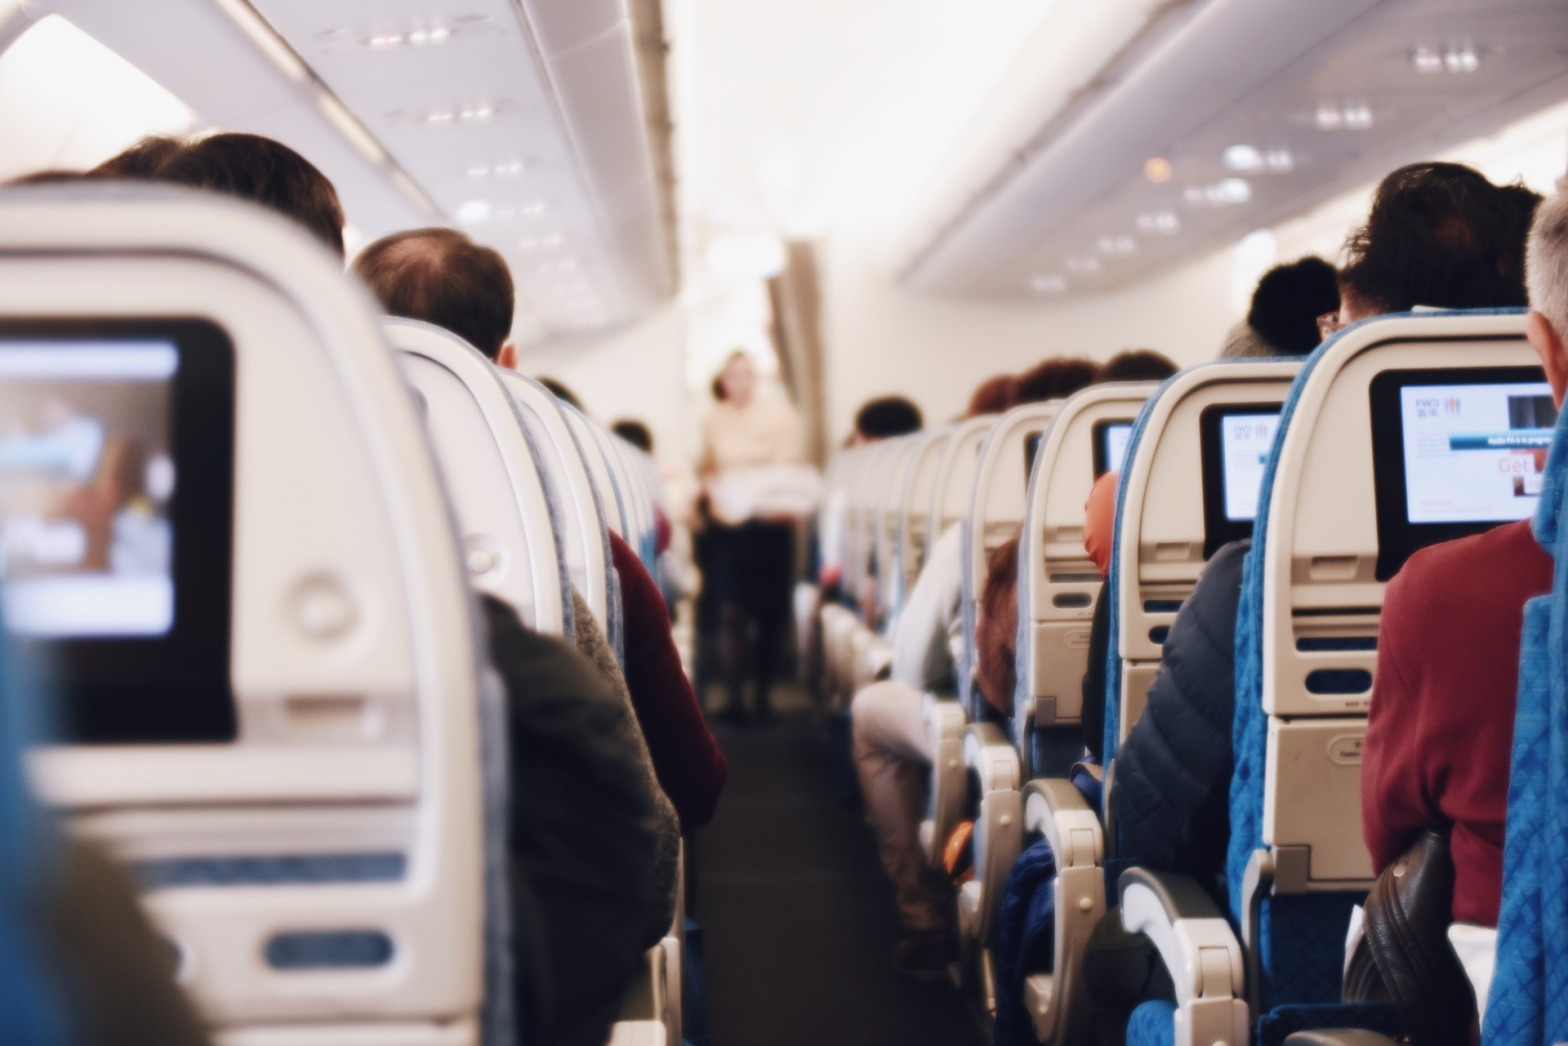 How to avoid motion sickness on planes